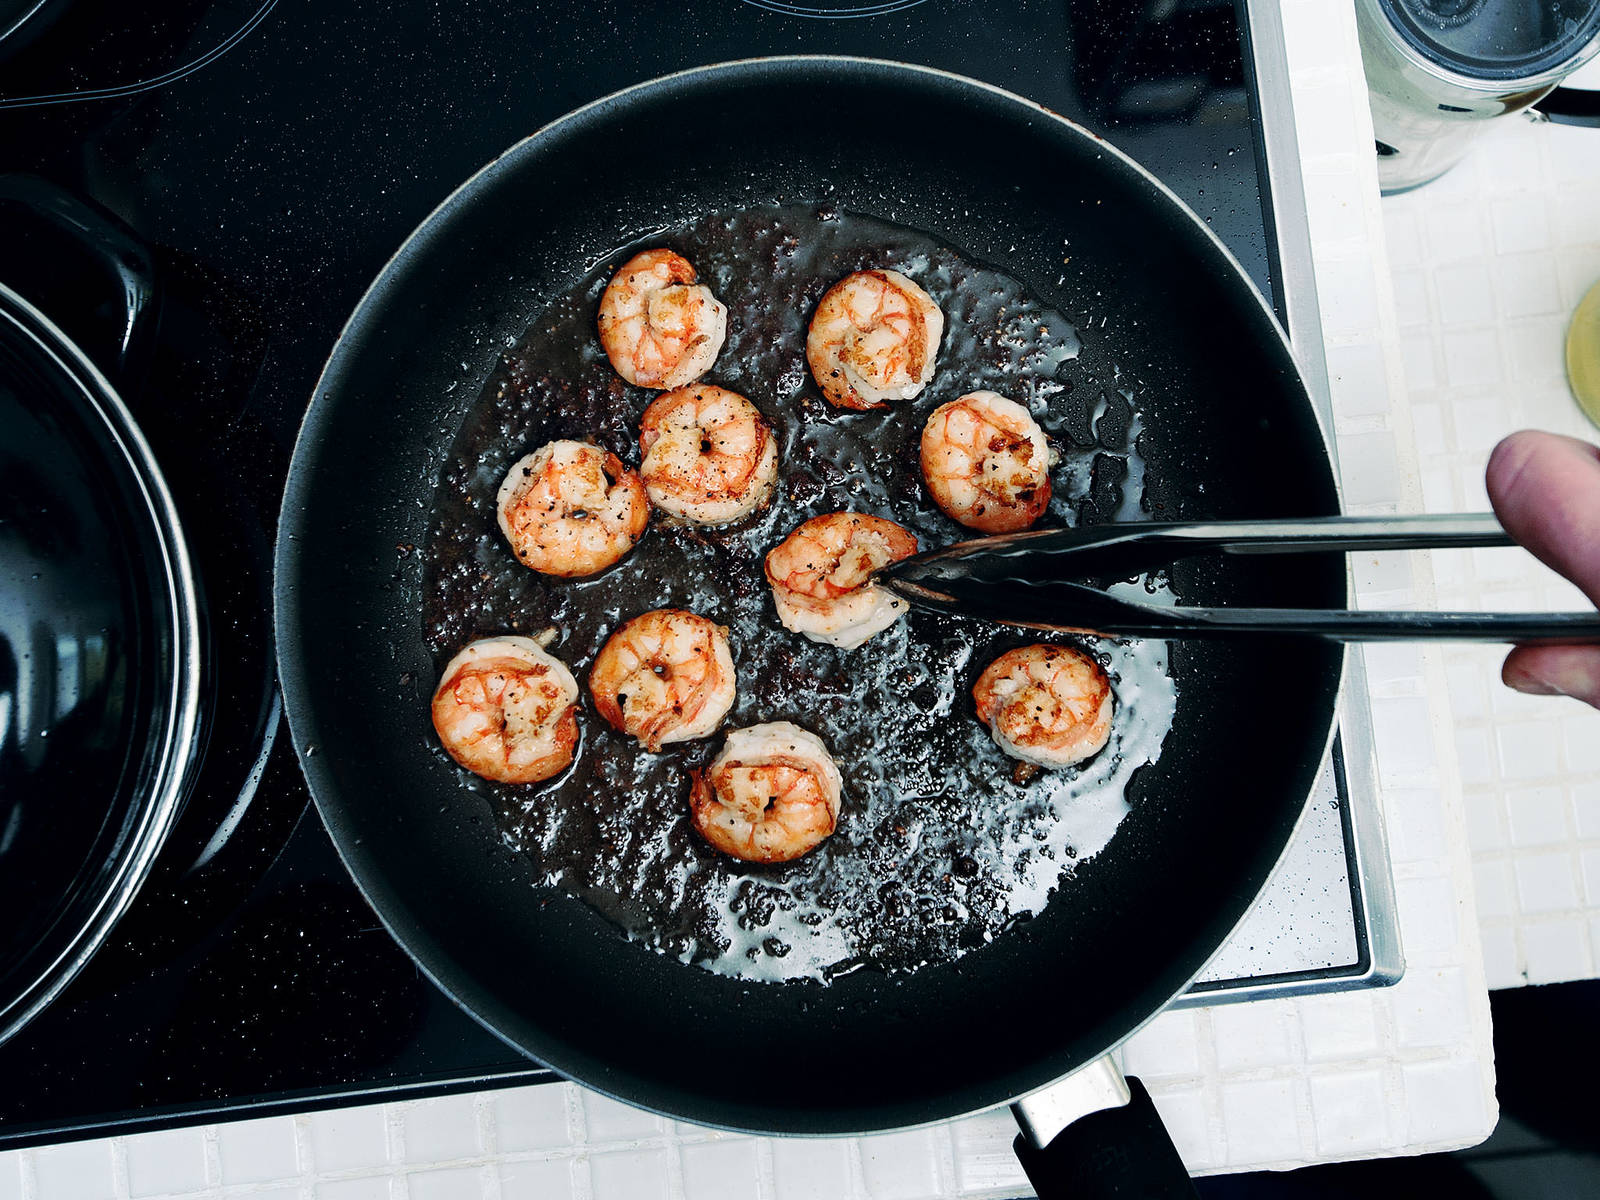 Peel and devein shrimp, add to a frying pan, and sauté in vegetable oil over medium-high heat with salt and pepper. Cook for approx. 2 – 4 min., until shrimp turn pink, then remove from heat and set aside.